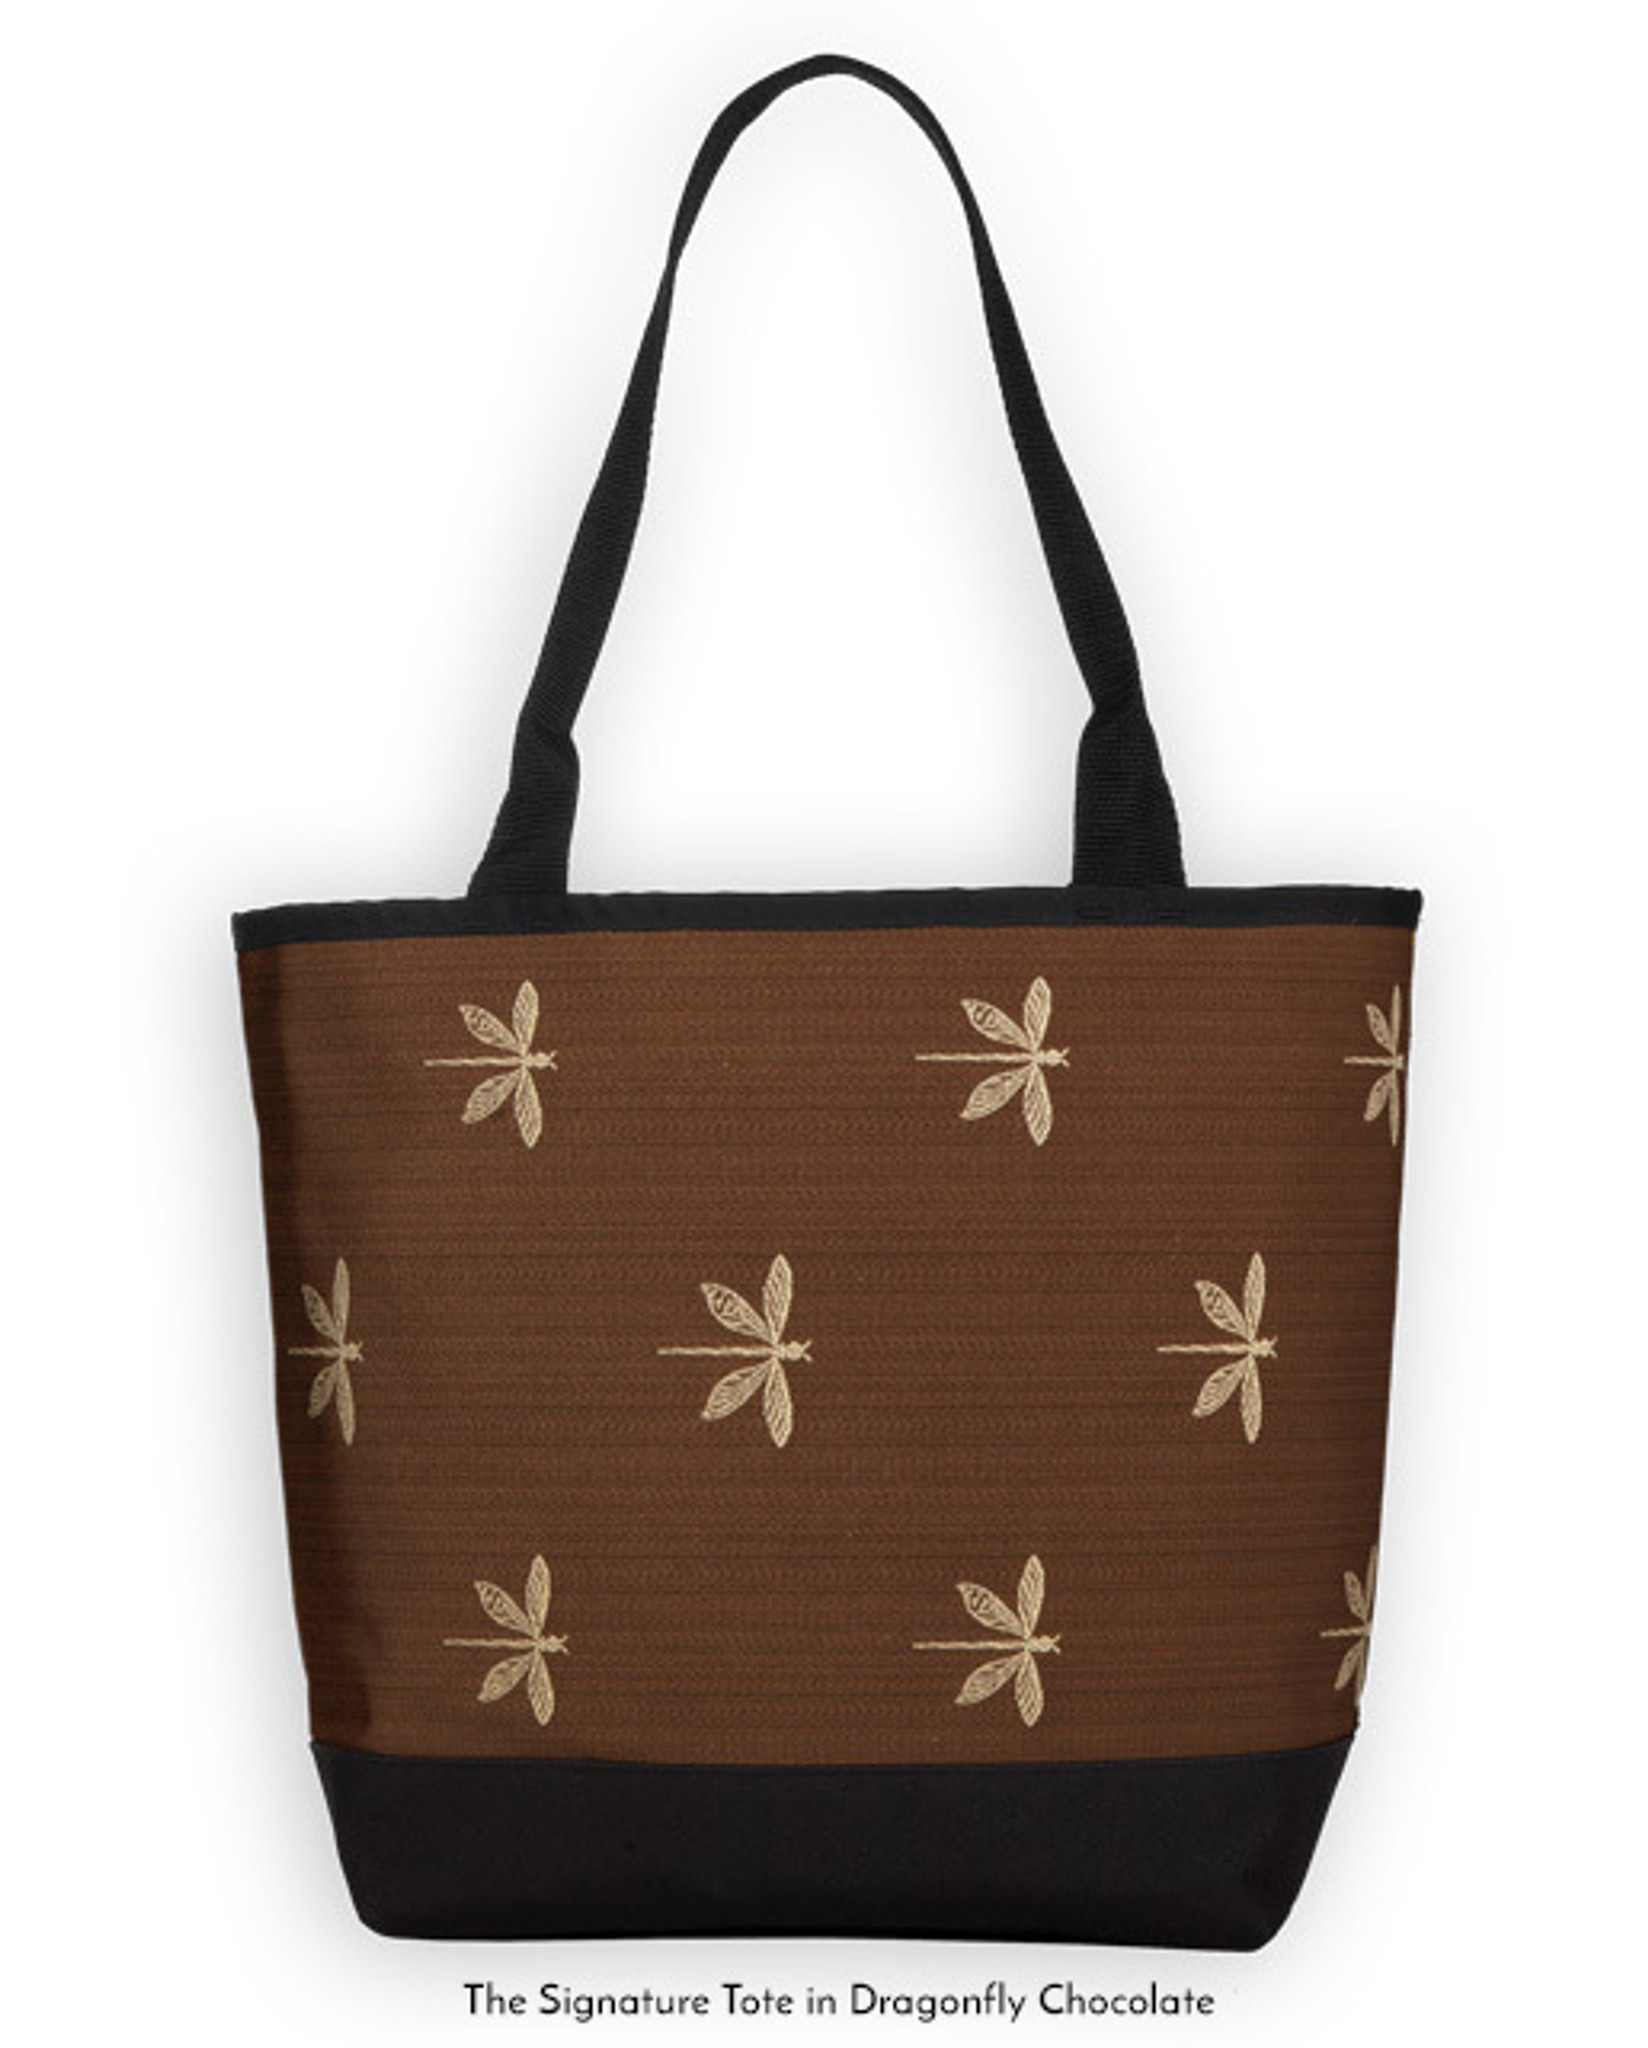 Signature Tote in Dragonfly Chocolate